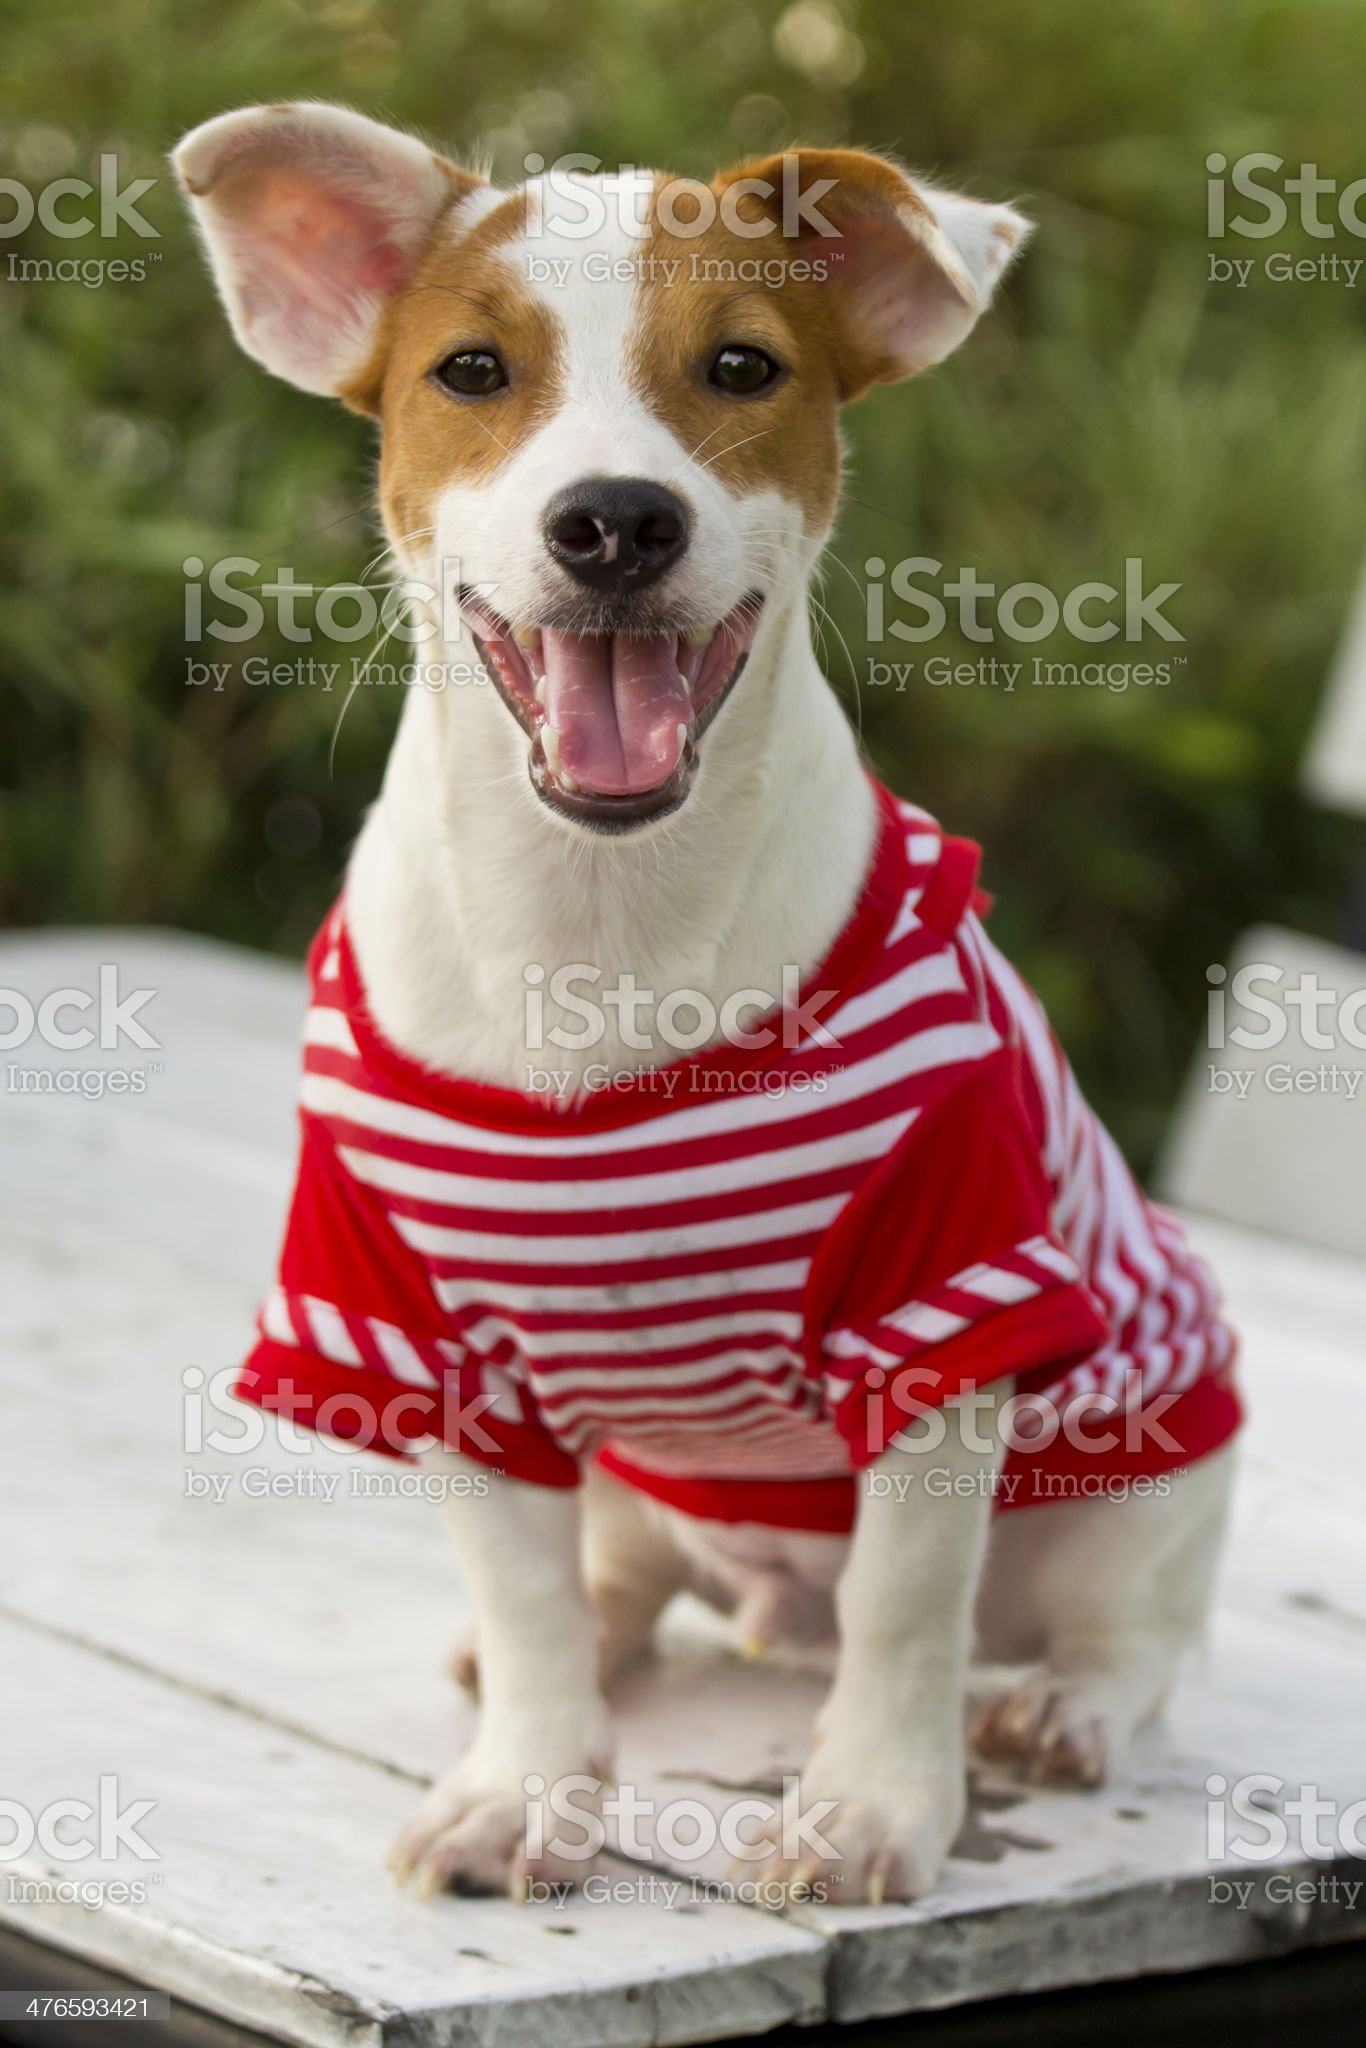 Jack Russell dog. royalty-free stock photo